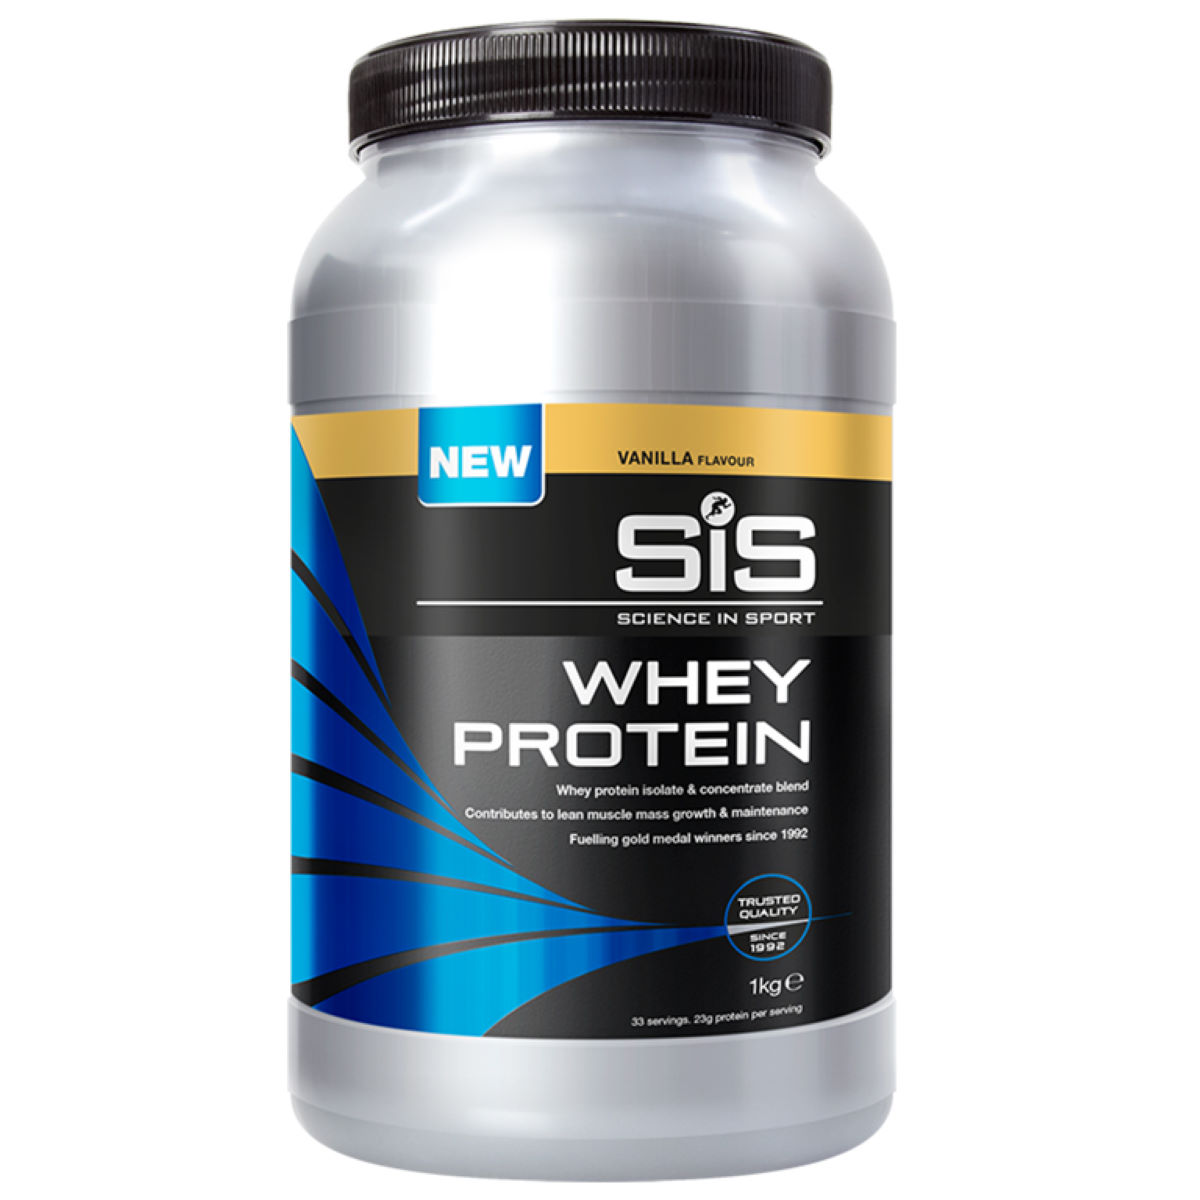 Science In Sport Whey Protein Powder (1kg) - 1kg Vanilla